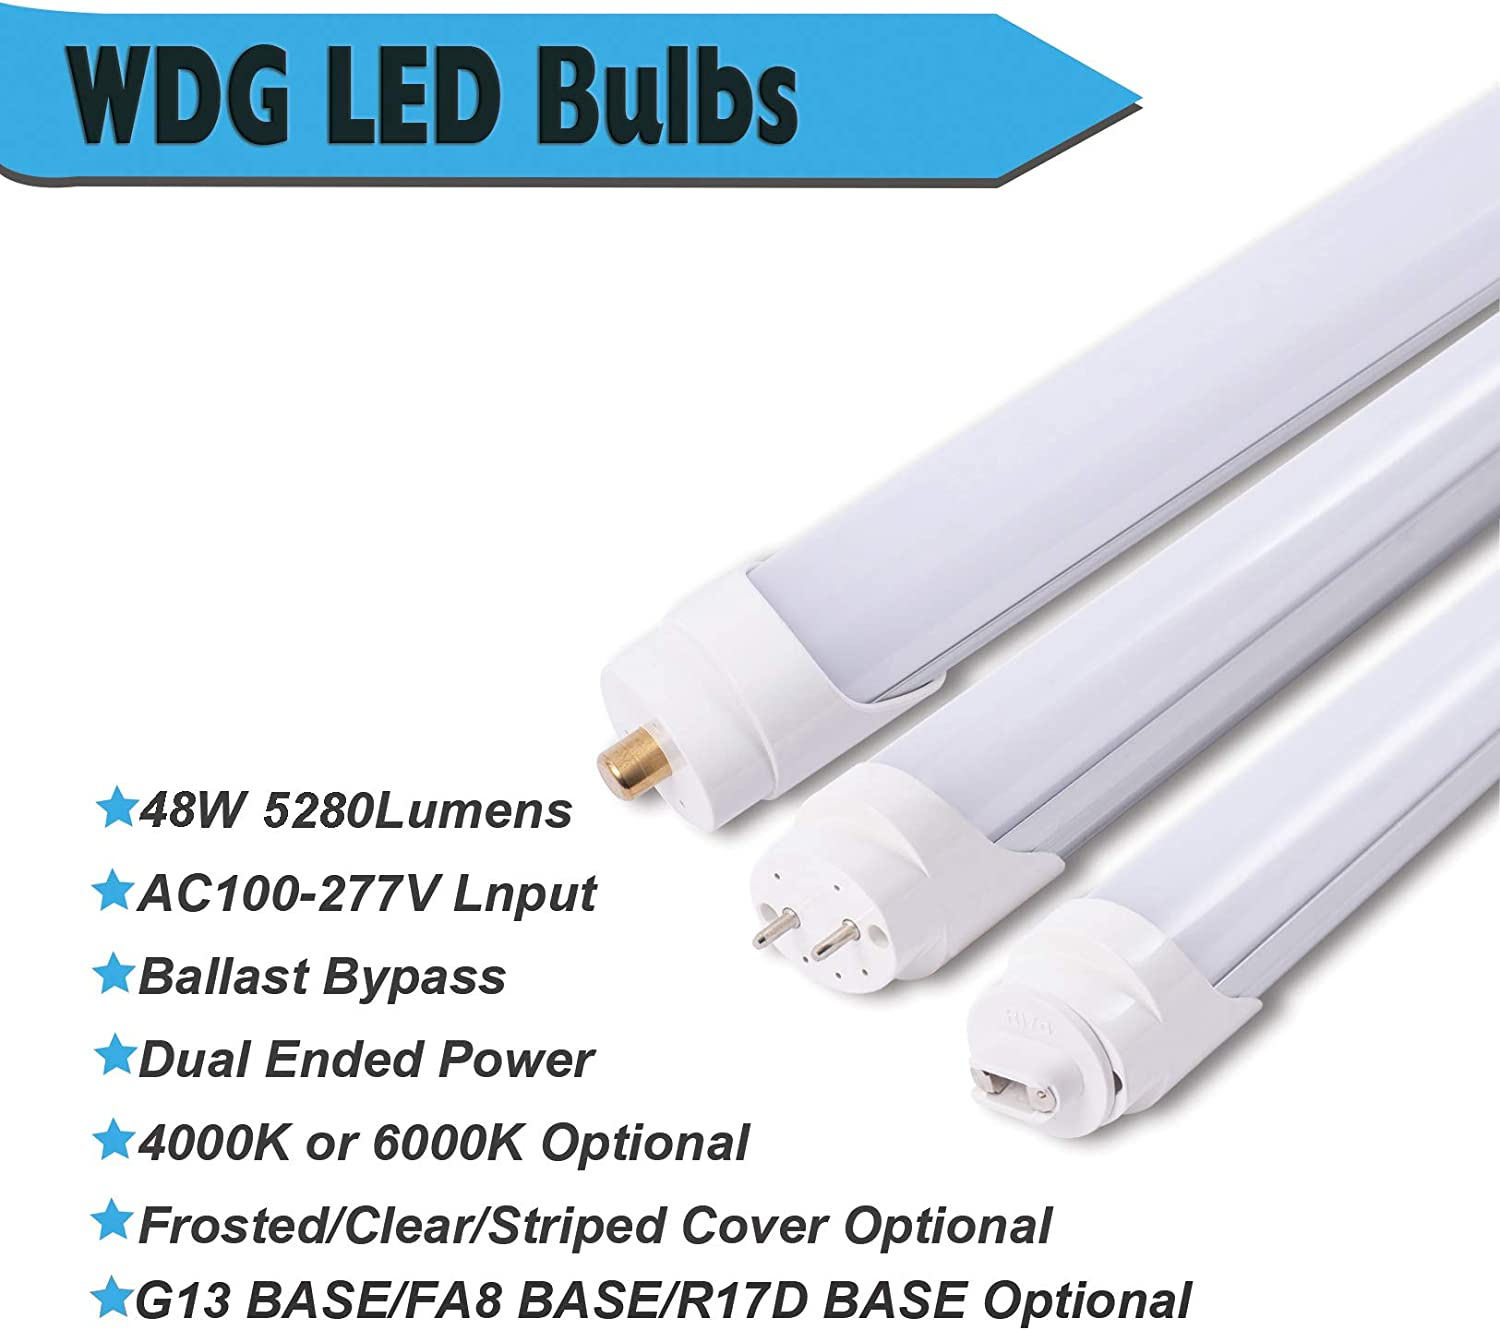 12 Pack WDG T8 T10 T12 Led Bulbs,8FT 48W Beer Cooler Lamp with FA8 Single Pin Base,Frosty Cover,ETL Listed 6500K Dual-end Powered 8 Tube Light,Ballast Bypass Replacements for Fluorescent Bulb